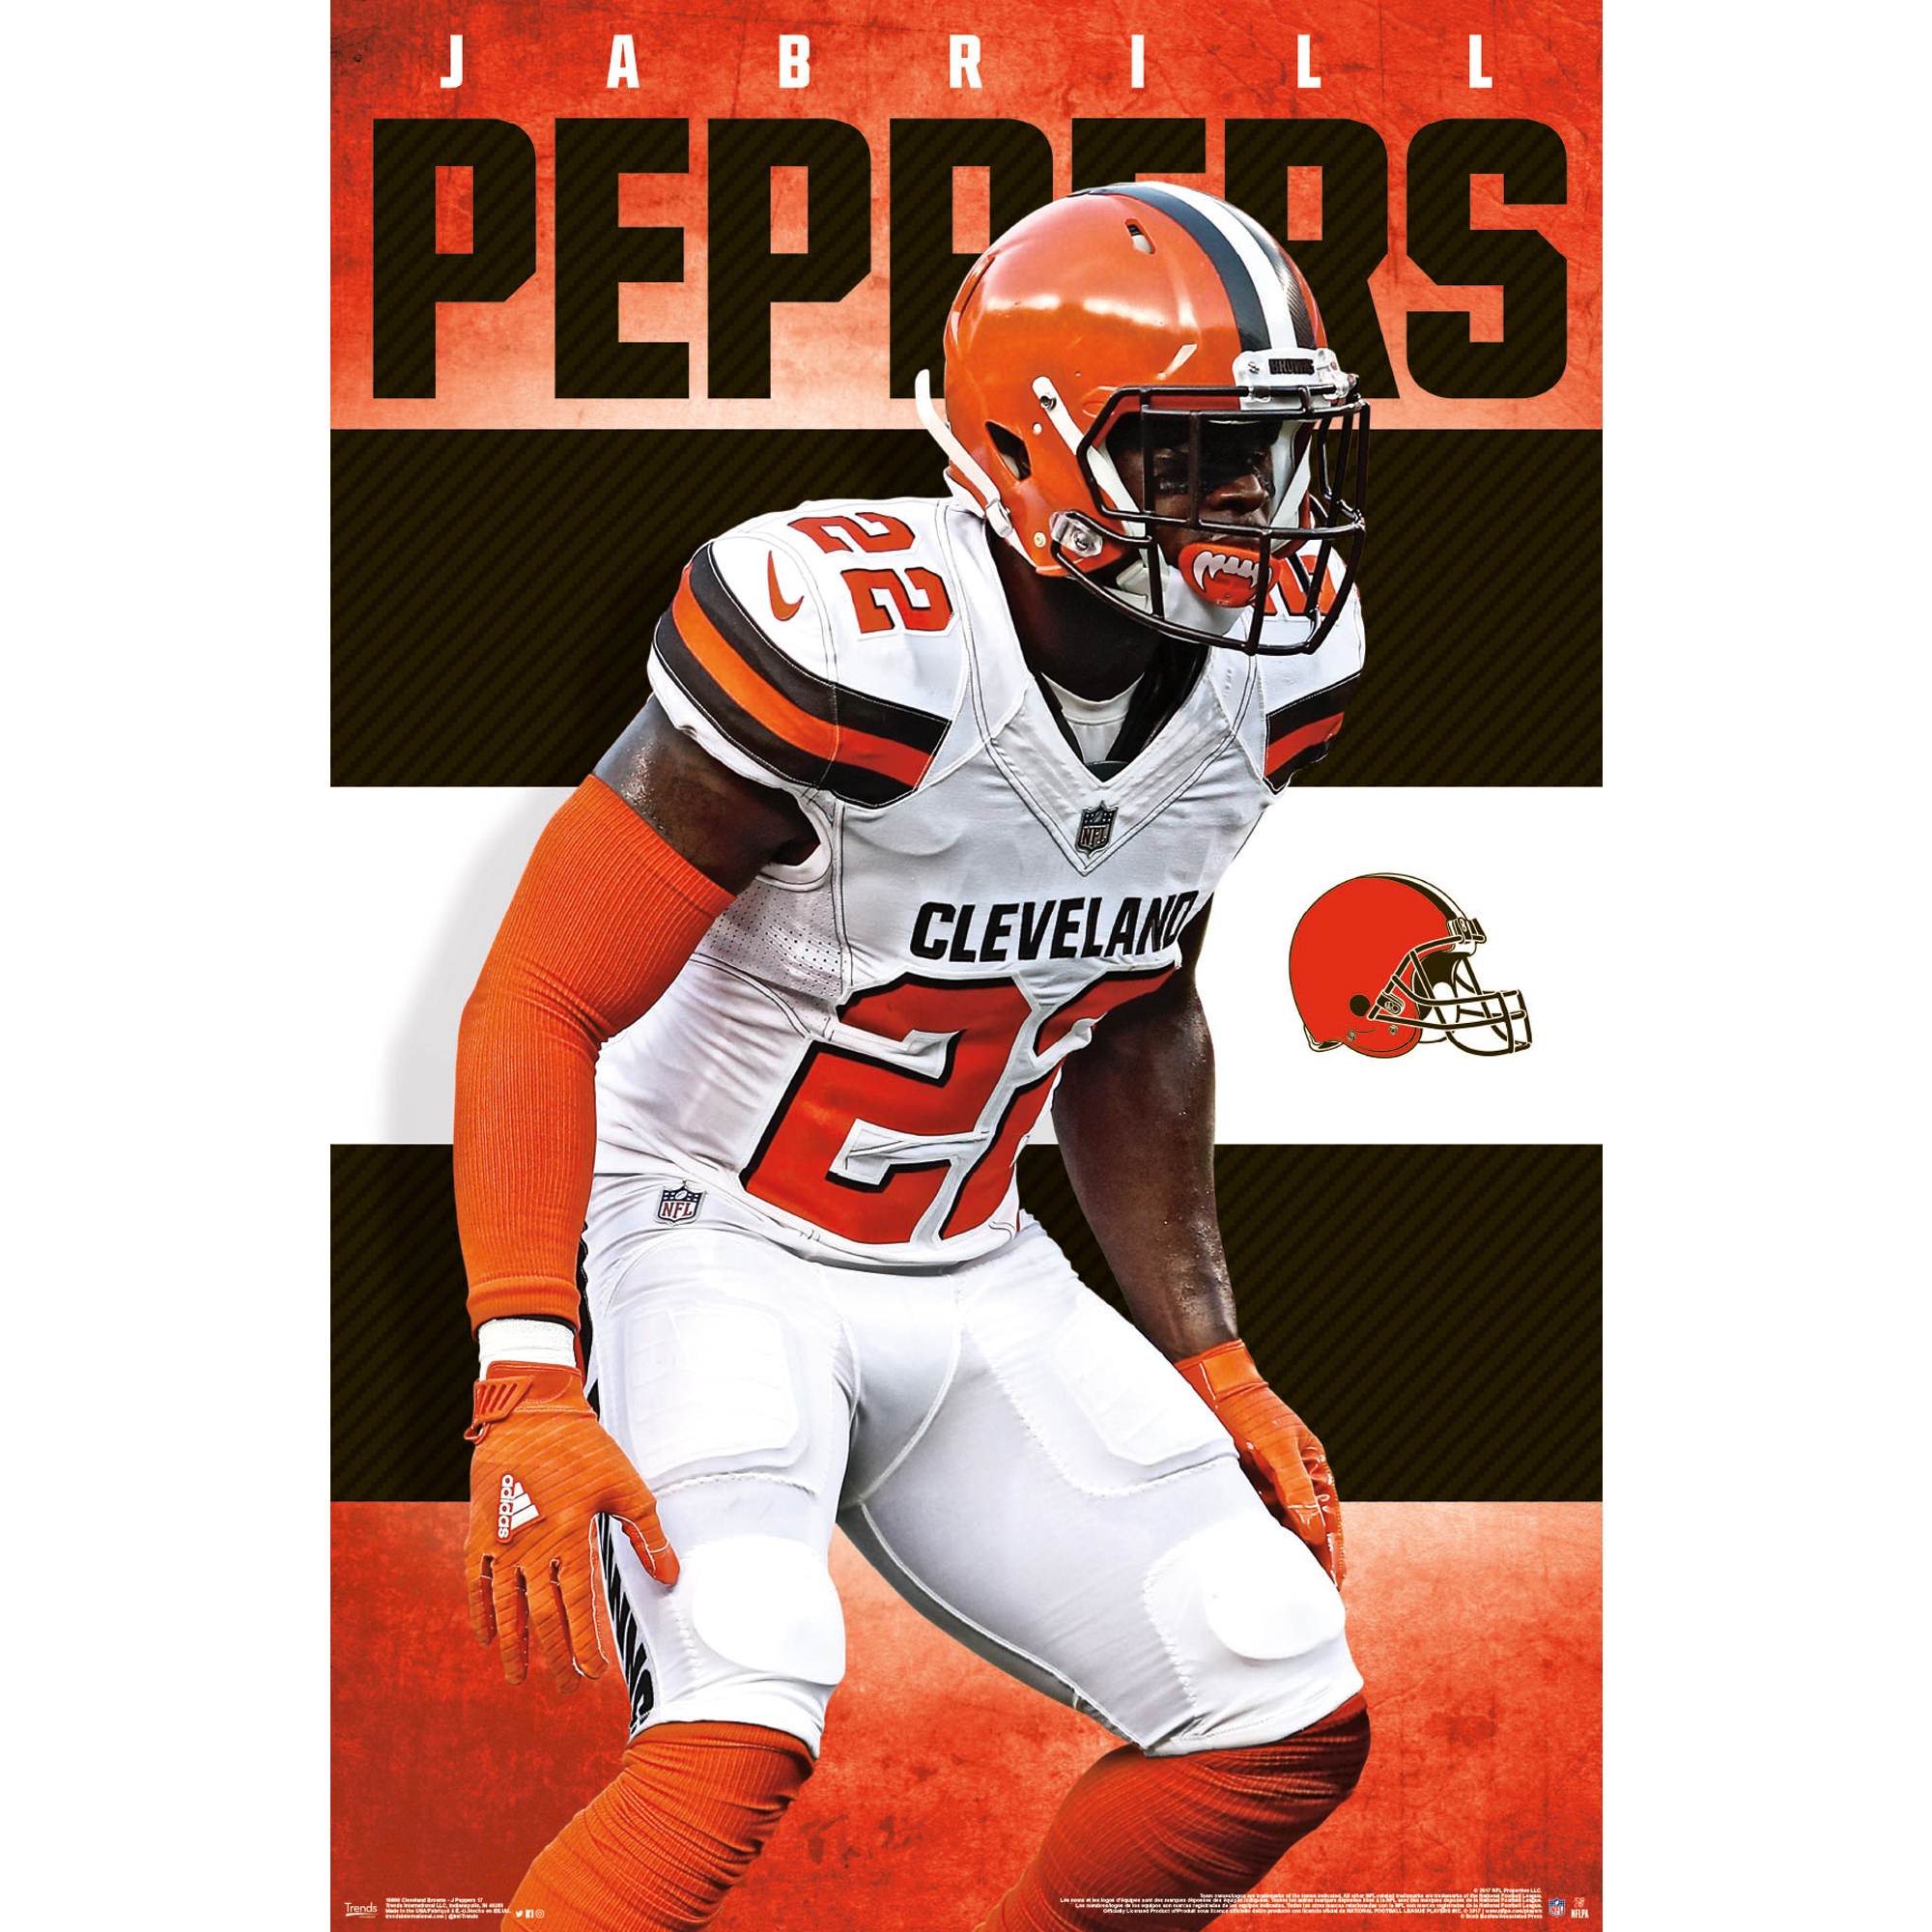 Jabrill Peppers Cleveland Browns 22'' x 34'' Player Poster - No Size